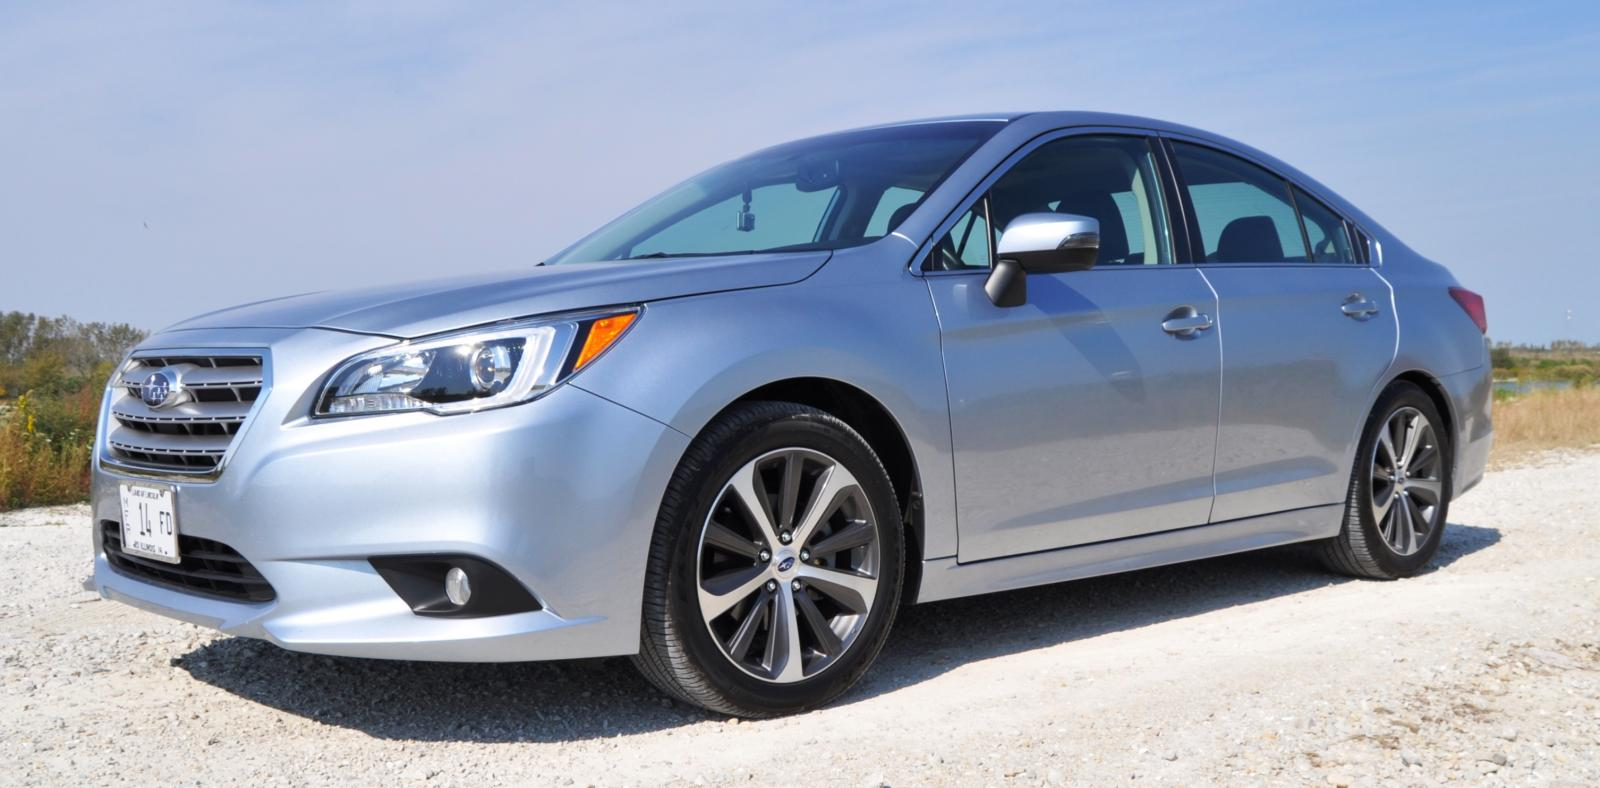 2017 subaru legacy sport hd road test review. Black Bedroom Furniture Sets. Home Design Ideas